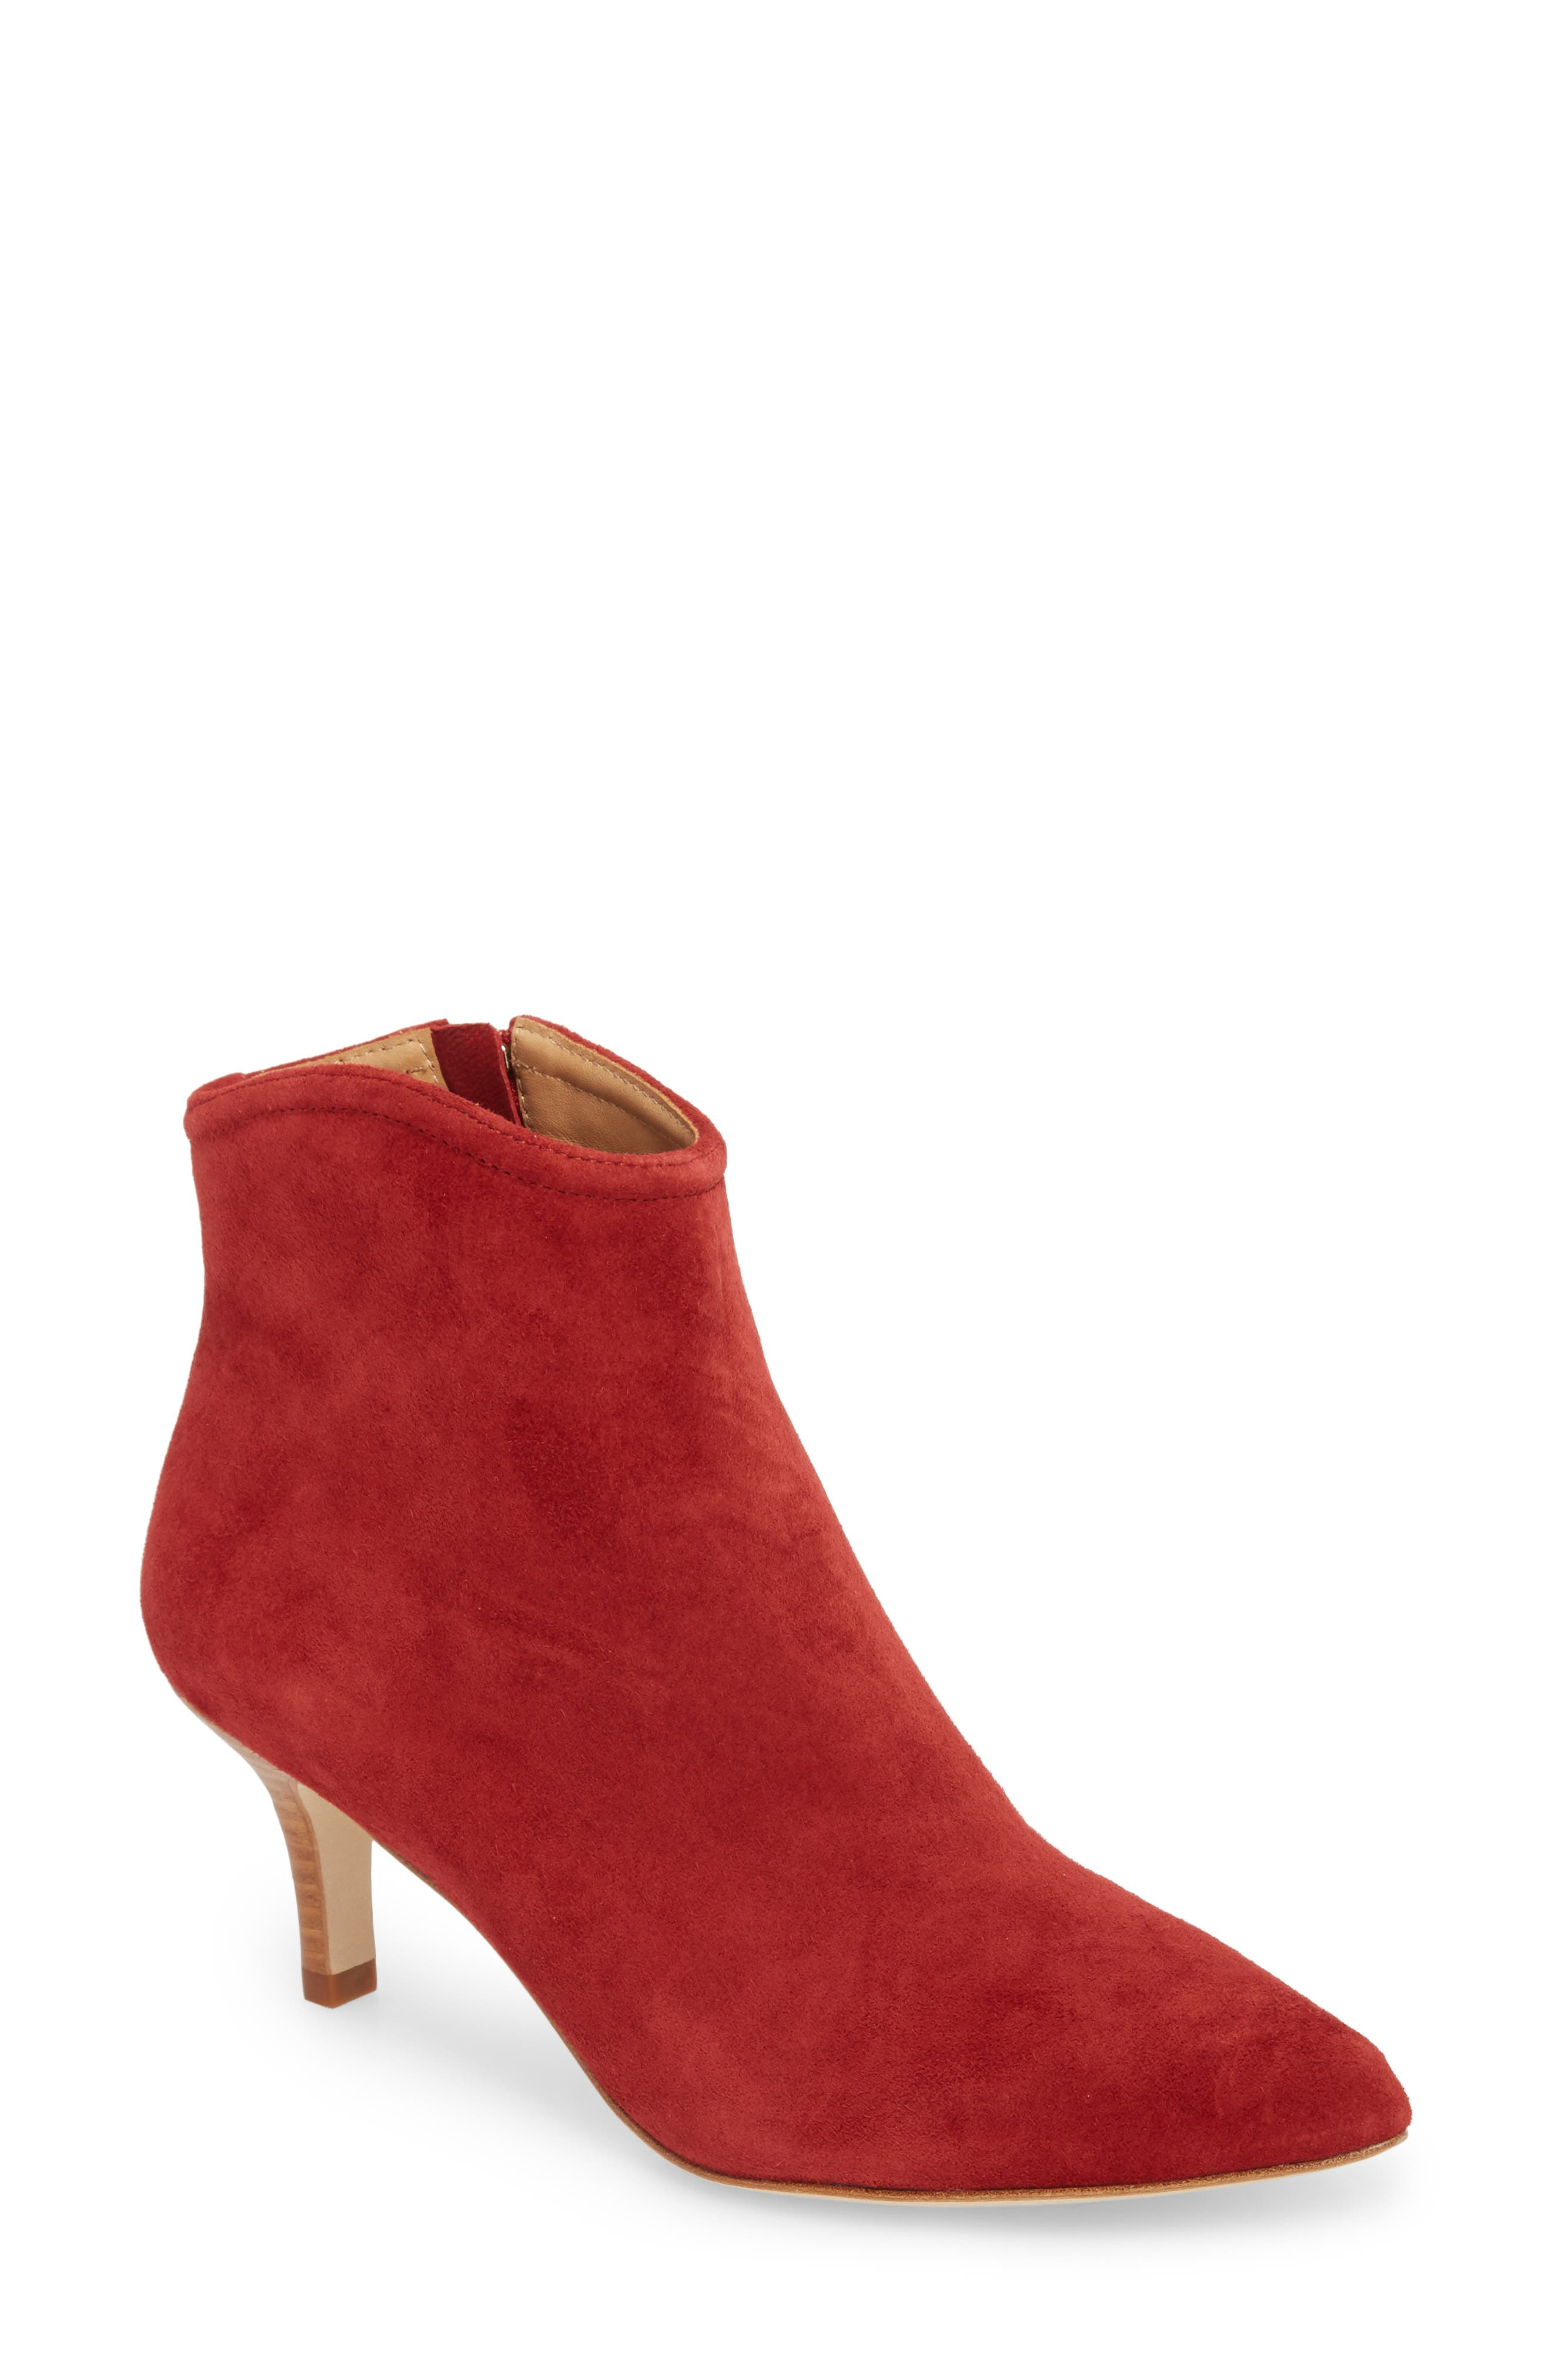 Ralean Almond Toe Bootie,                         Main,                         color, Currant